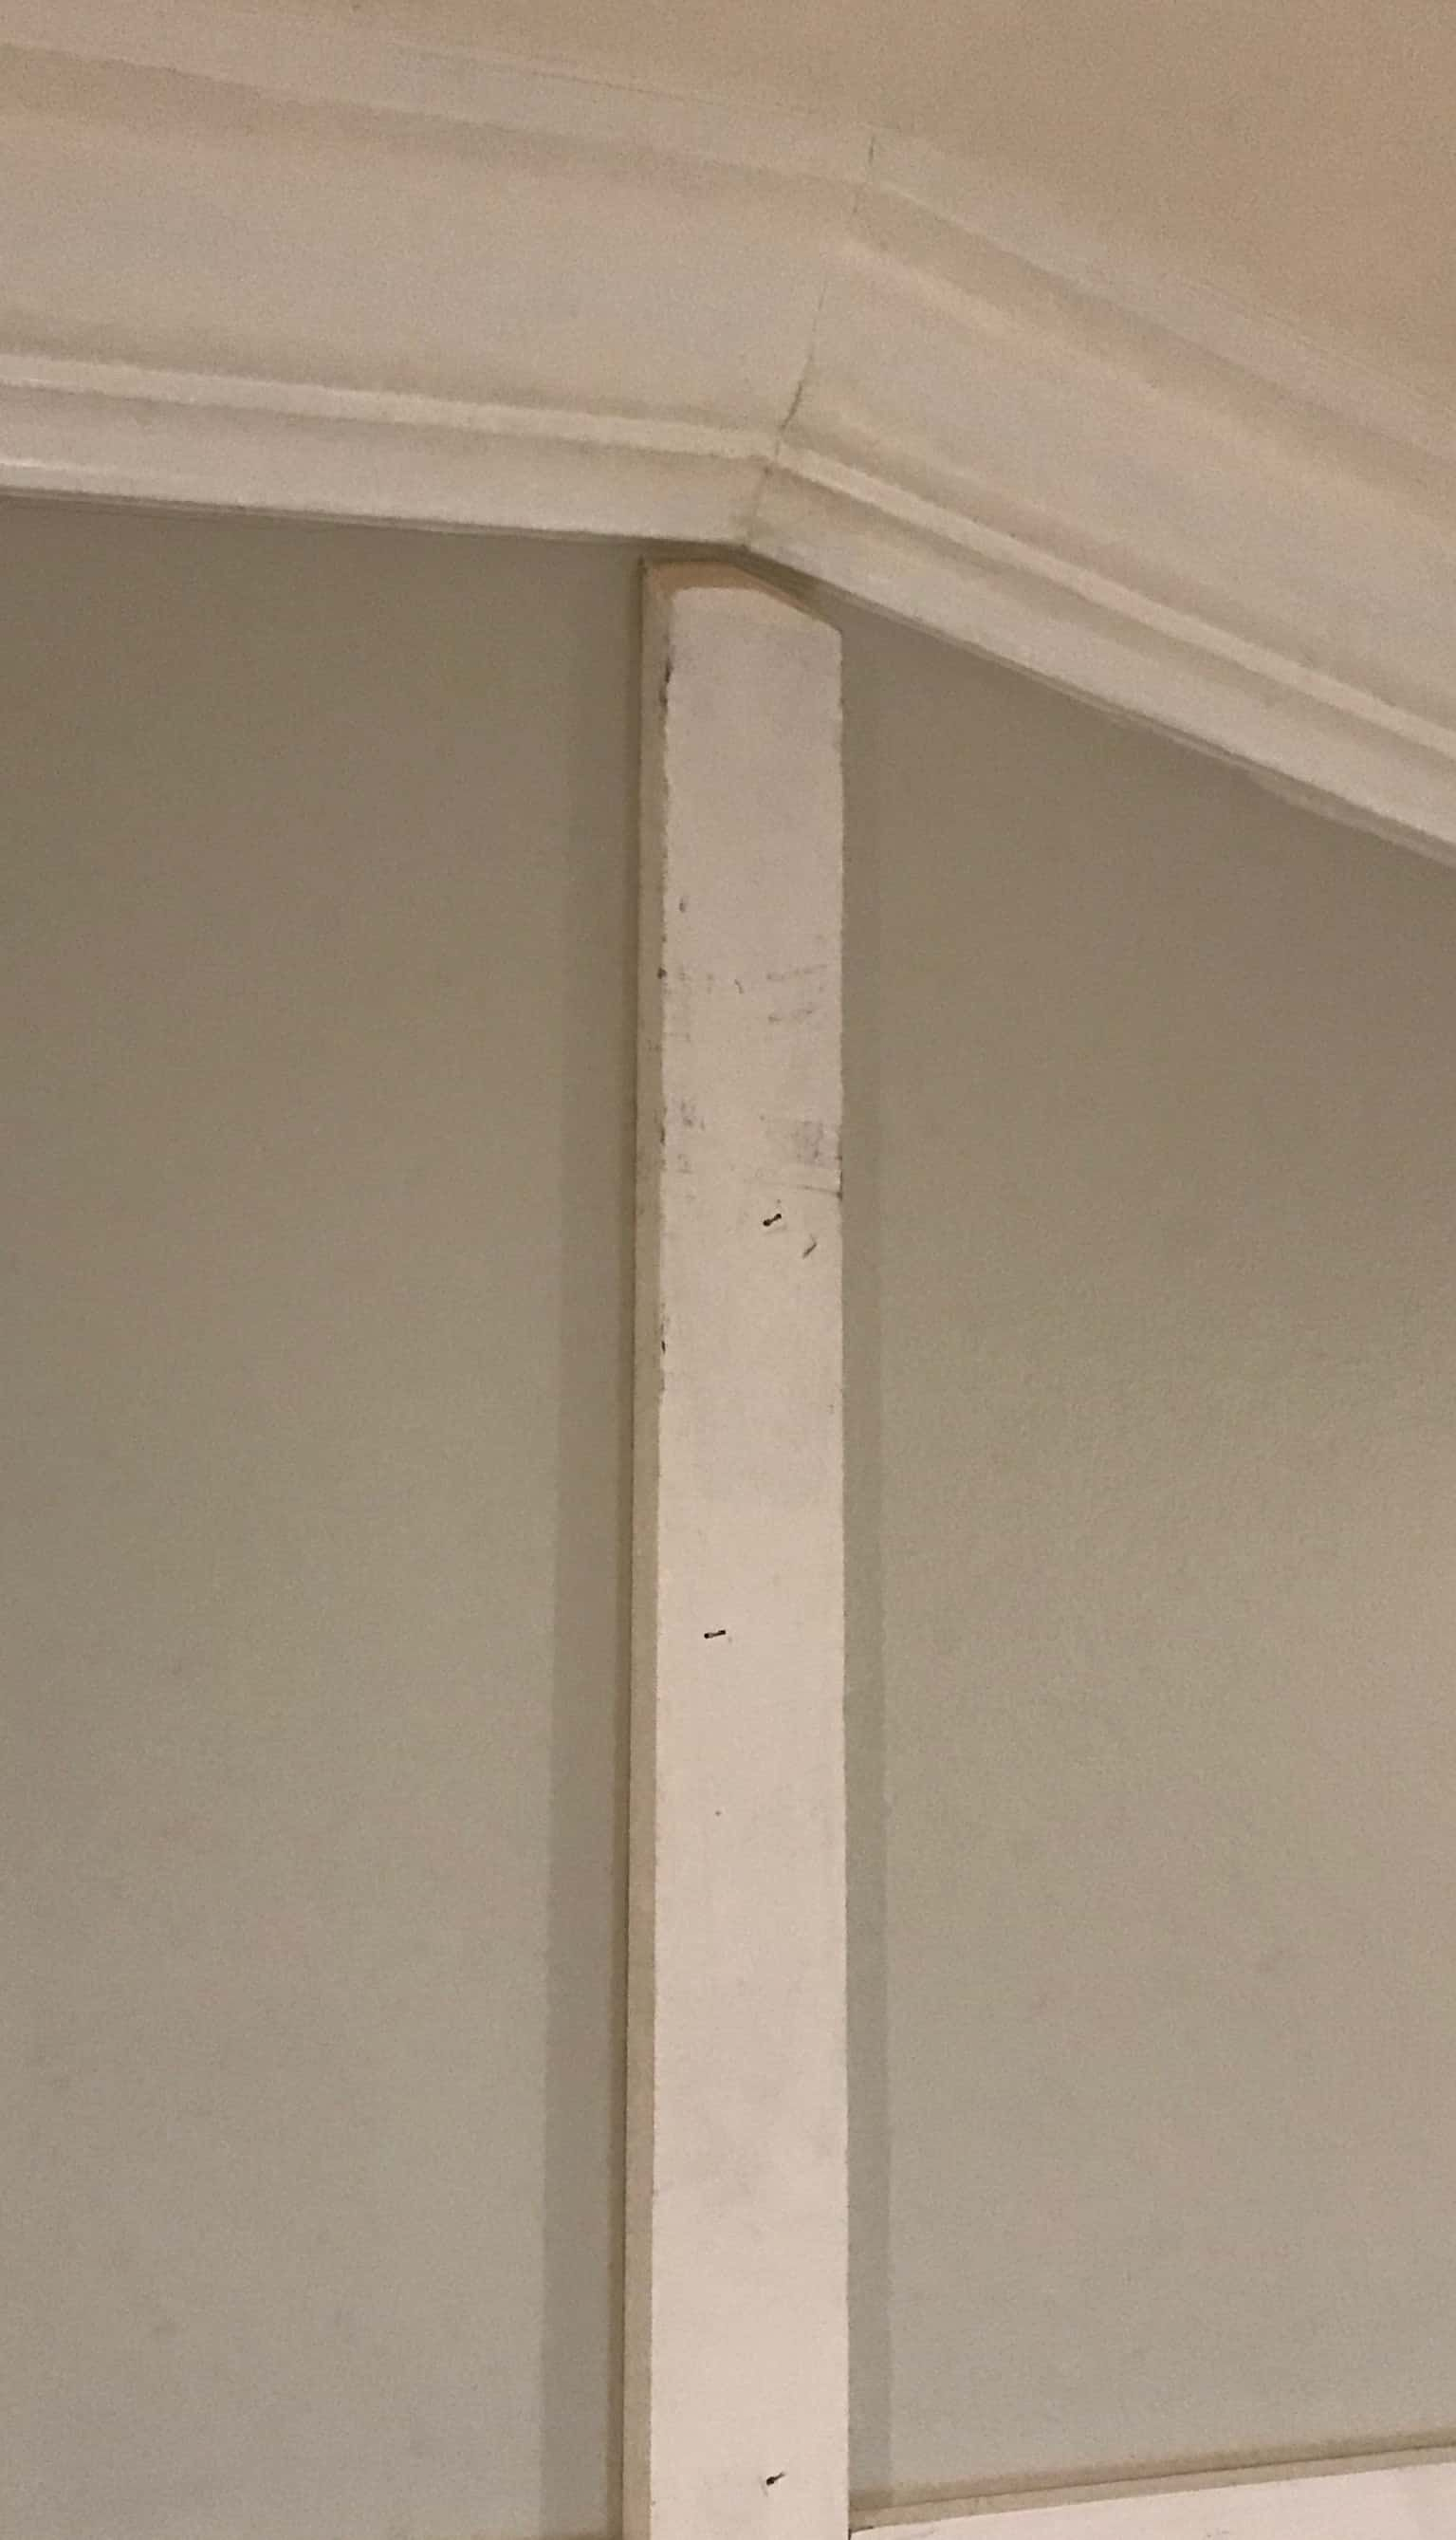 Installing Board And Batten Without Removing The Baseboards Installing Wainscoting Baseboards Diy Wainscoting